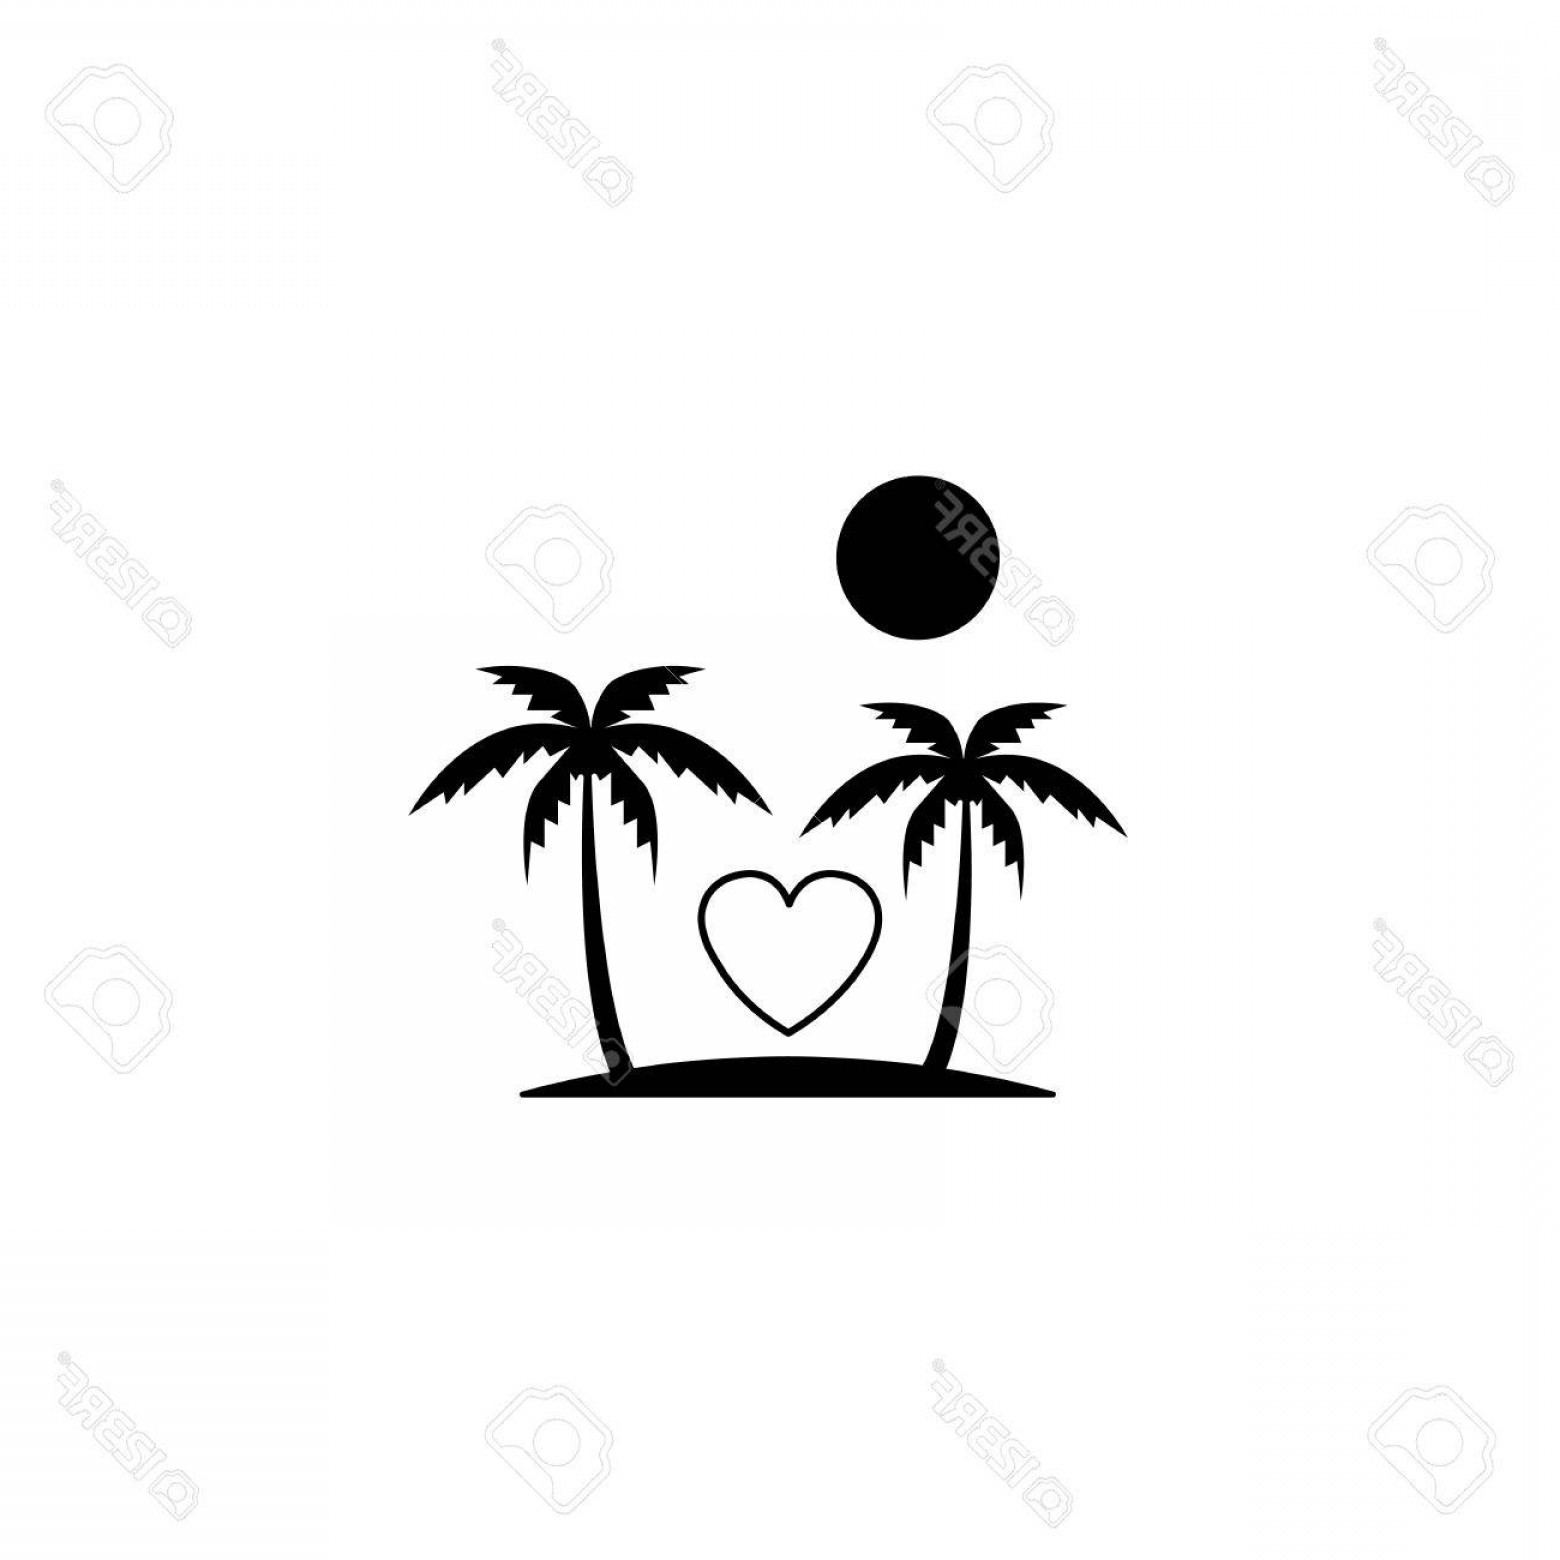 Solid Heart Vector Drawing: Photostock Vector Tour In Valentine S Day Solid Icon Travel And Island With Heart Love Concept Vector Graphics A Fille